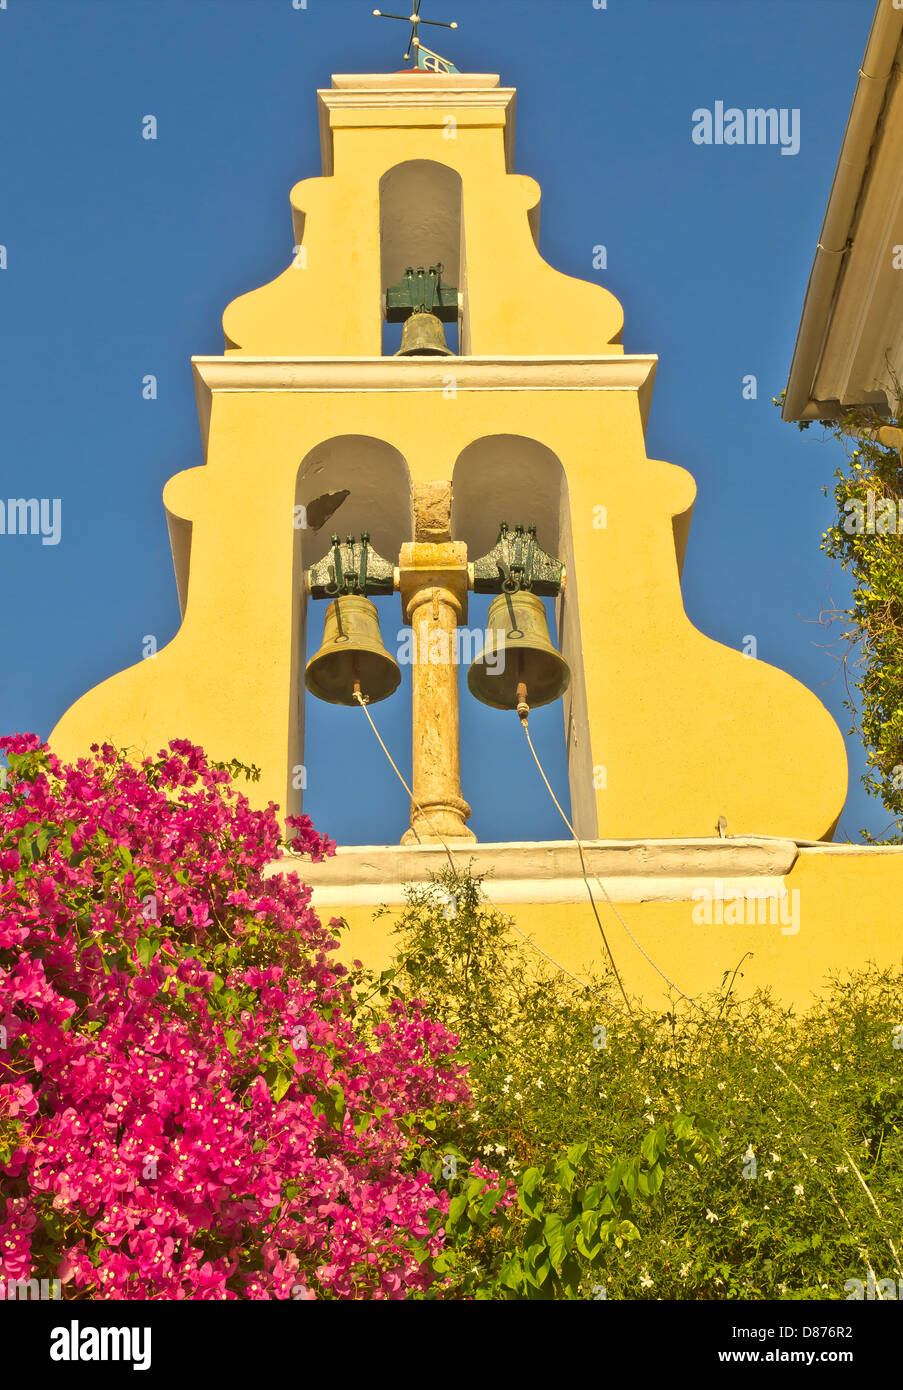 Monastry front architectural element and bells near Paleokastristas, Corfu Island, Greece - Stock Image